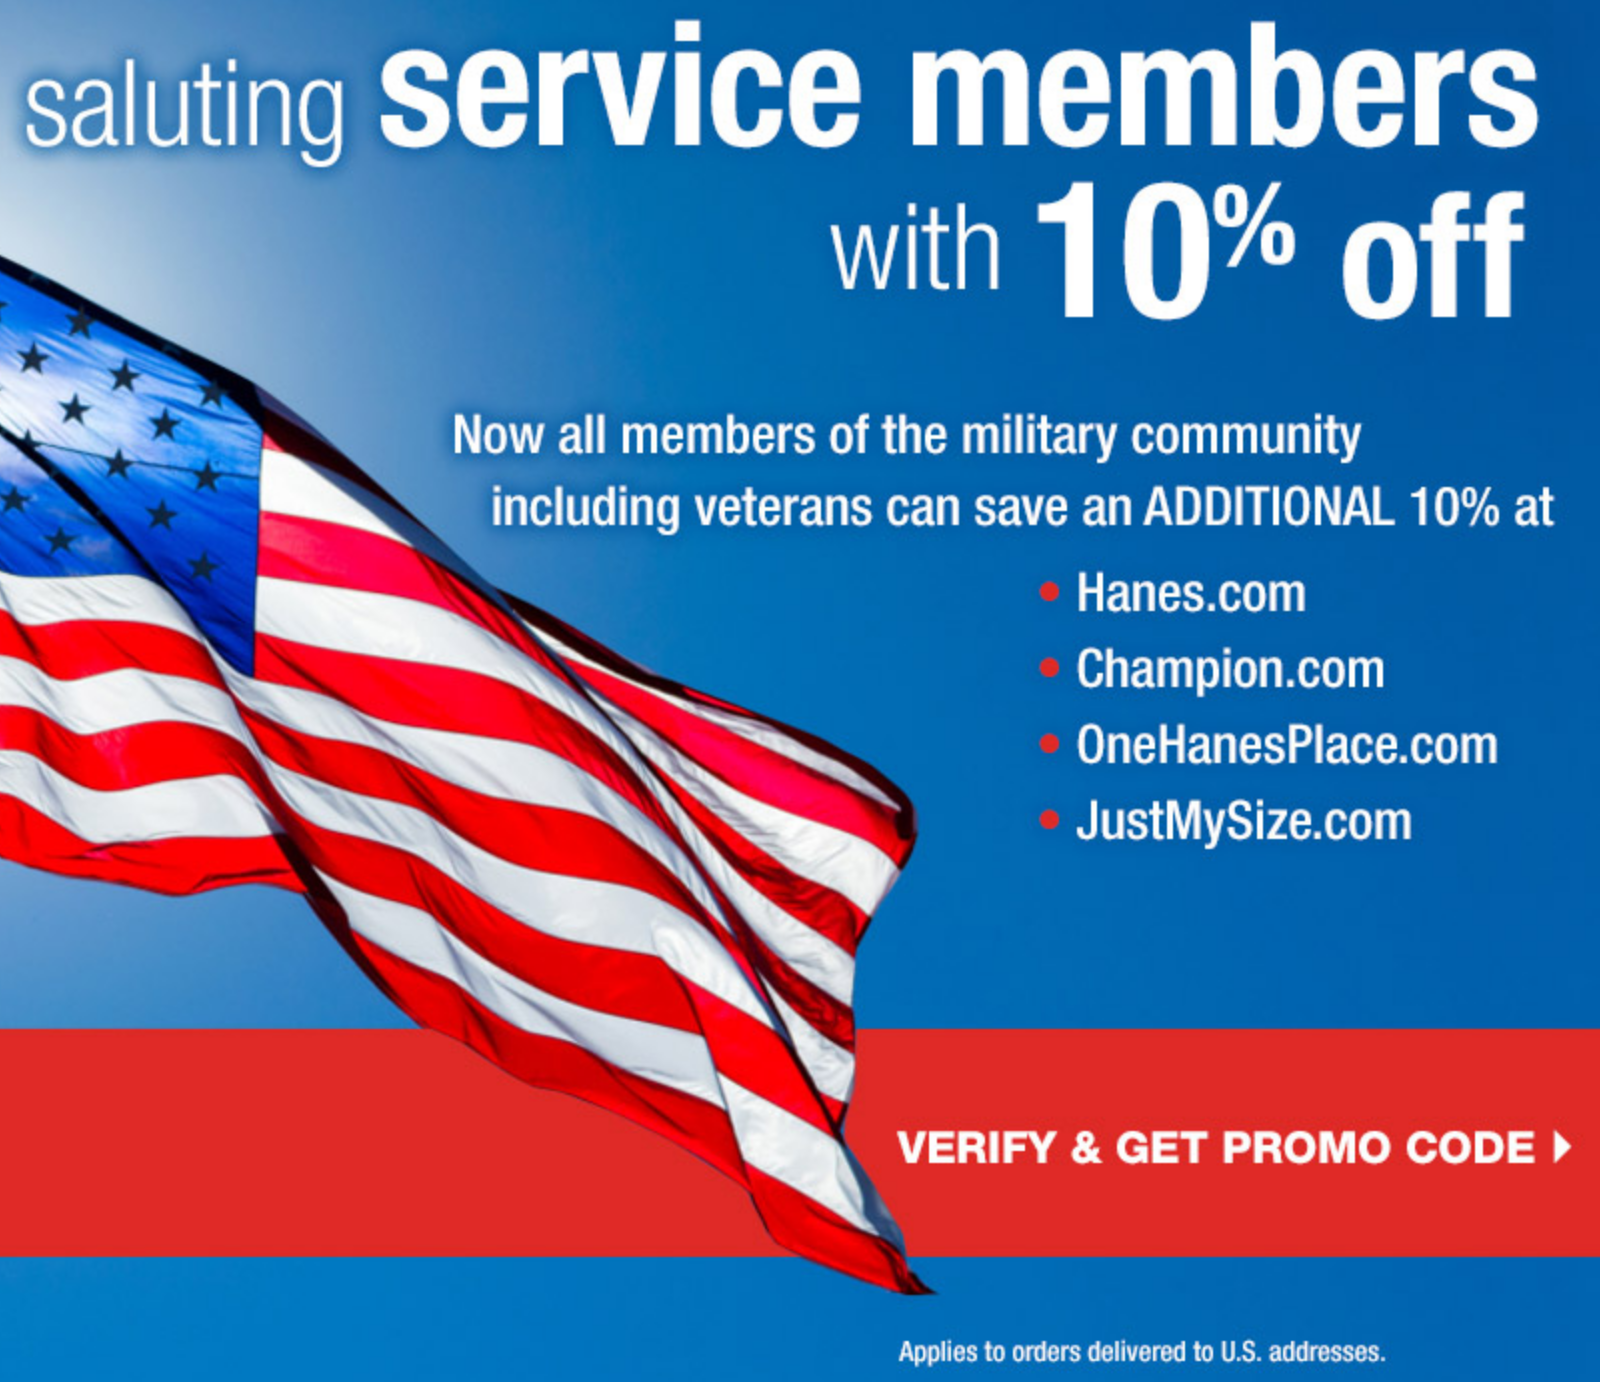 Champion.com Military Veteran Discounts